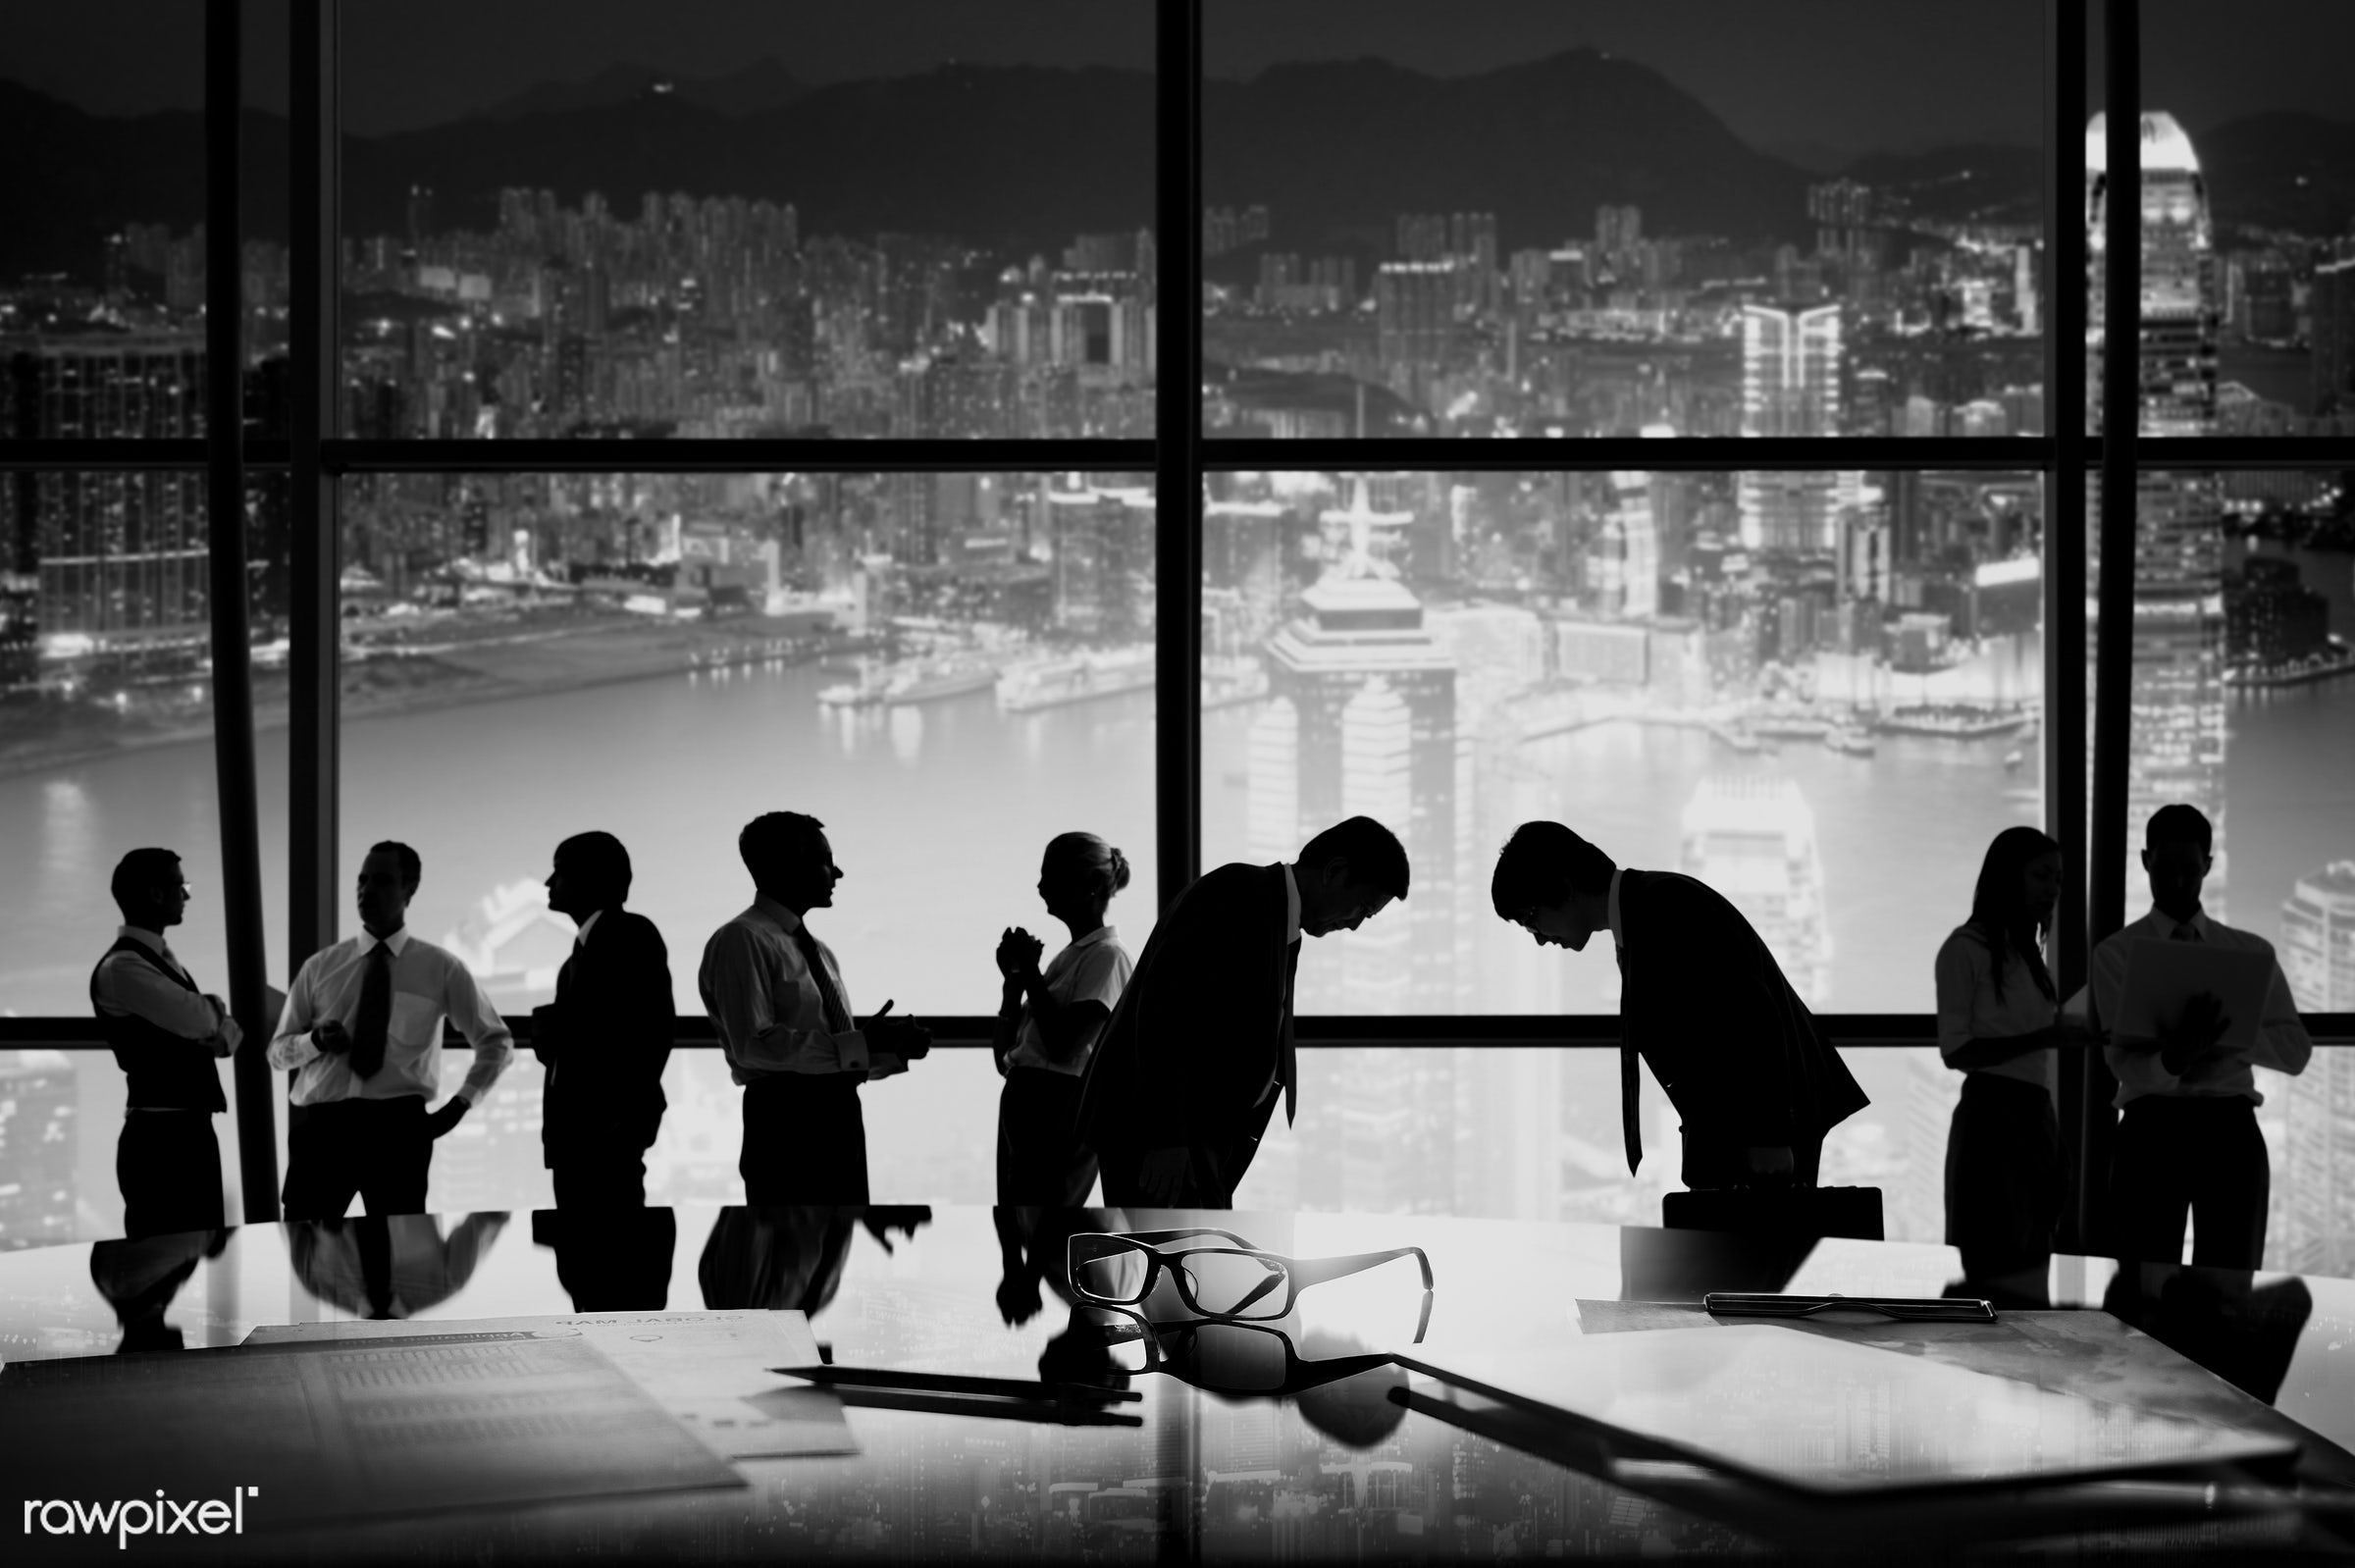 bowing, brainstorming, building, business, business people, businessmen, businesswomen, busy, city, cityscape, colleague,...